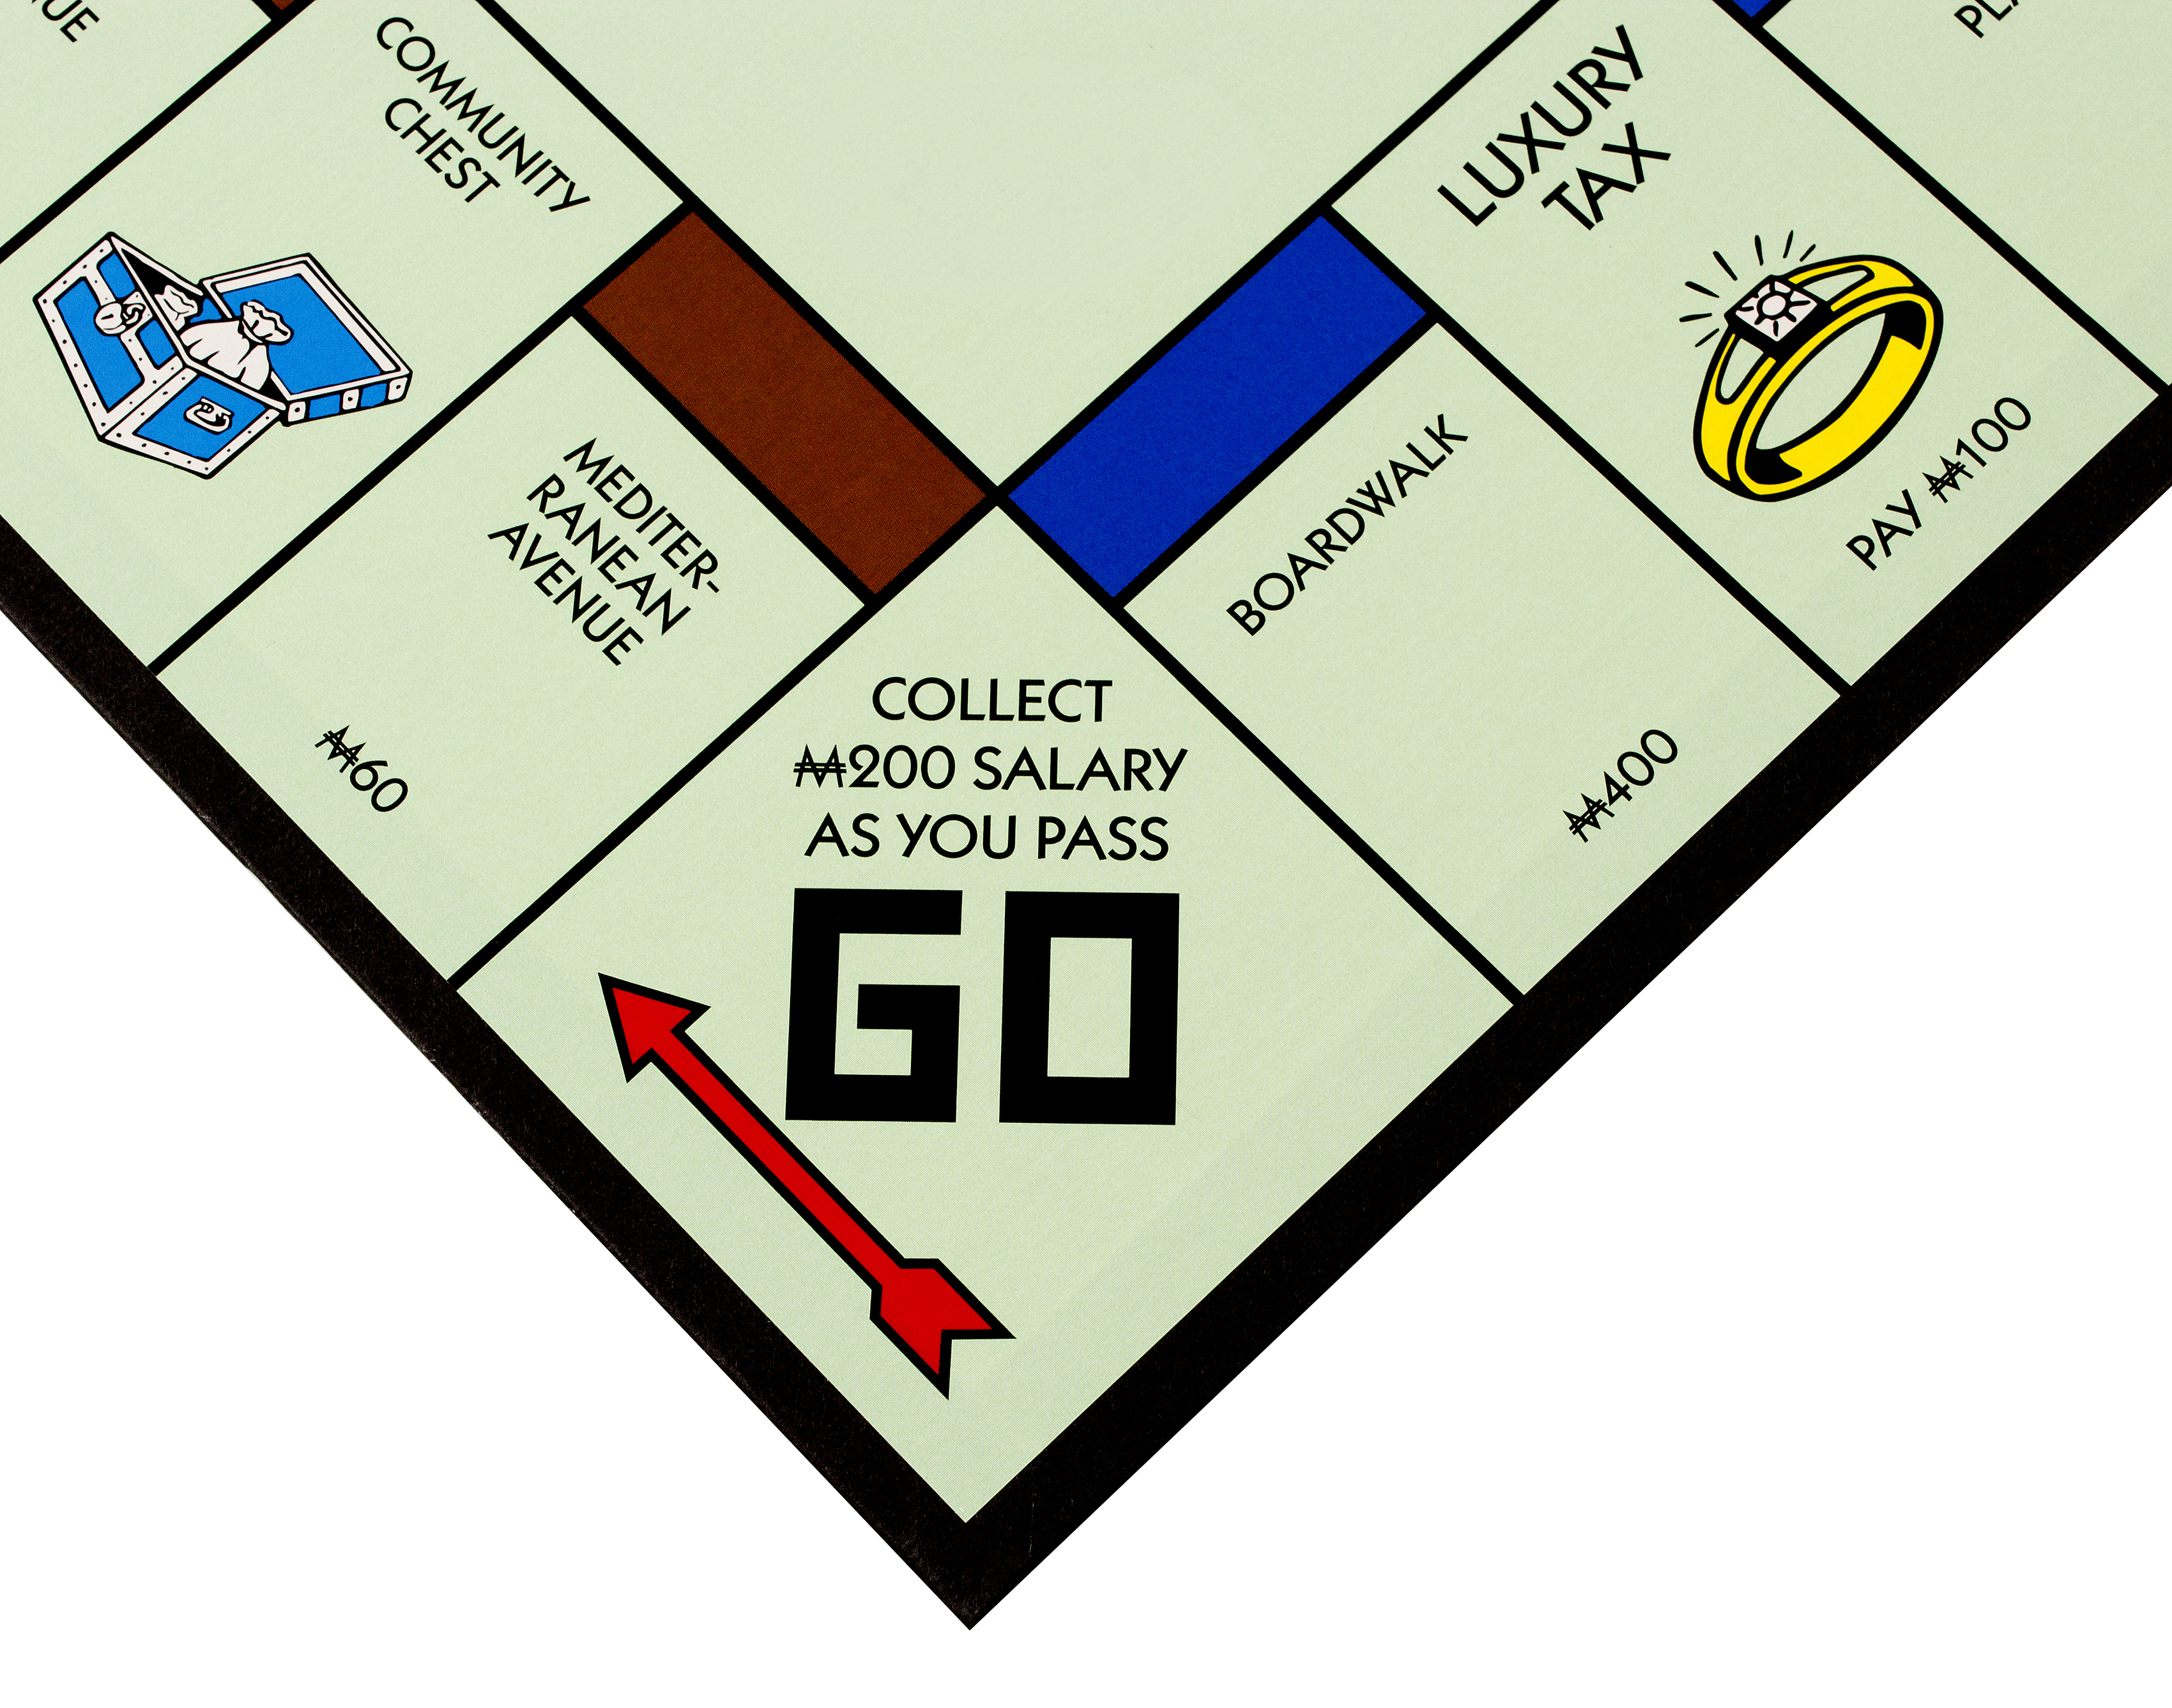 RIVER FALLS,WISCONSIN-NOVEMBER 17,2015: A Monopoly board featuring the Go square. Monopoly originated in the United States in Nineteen Hundred and Three